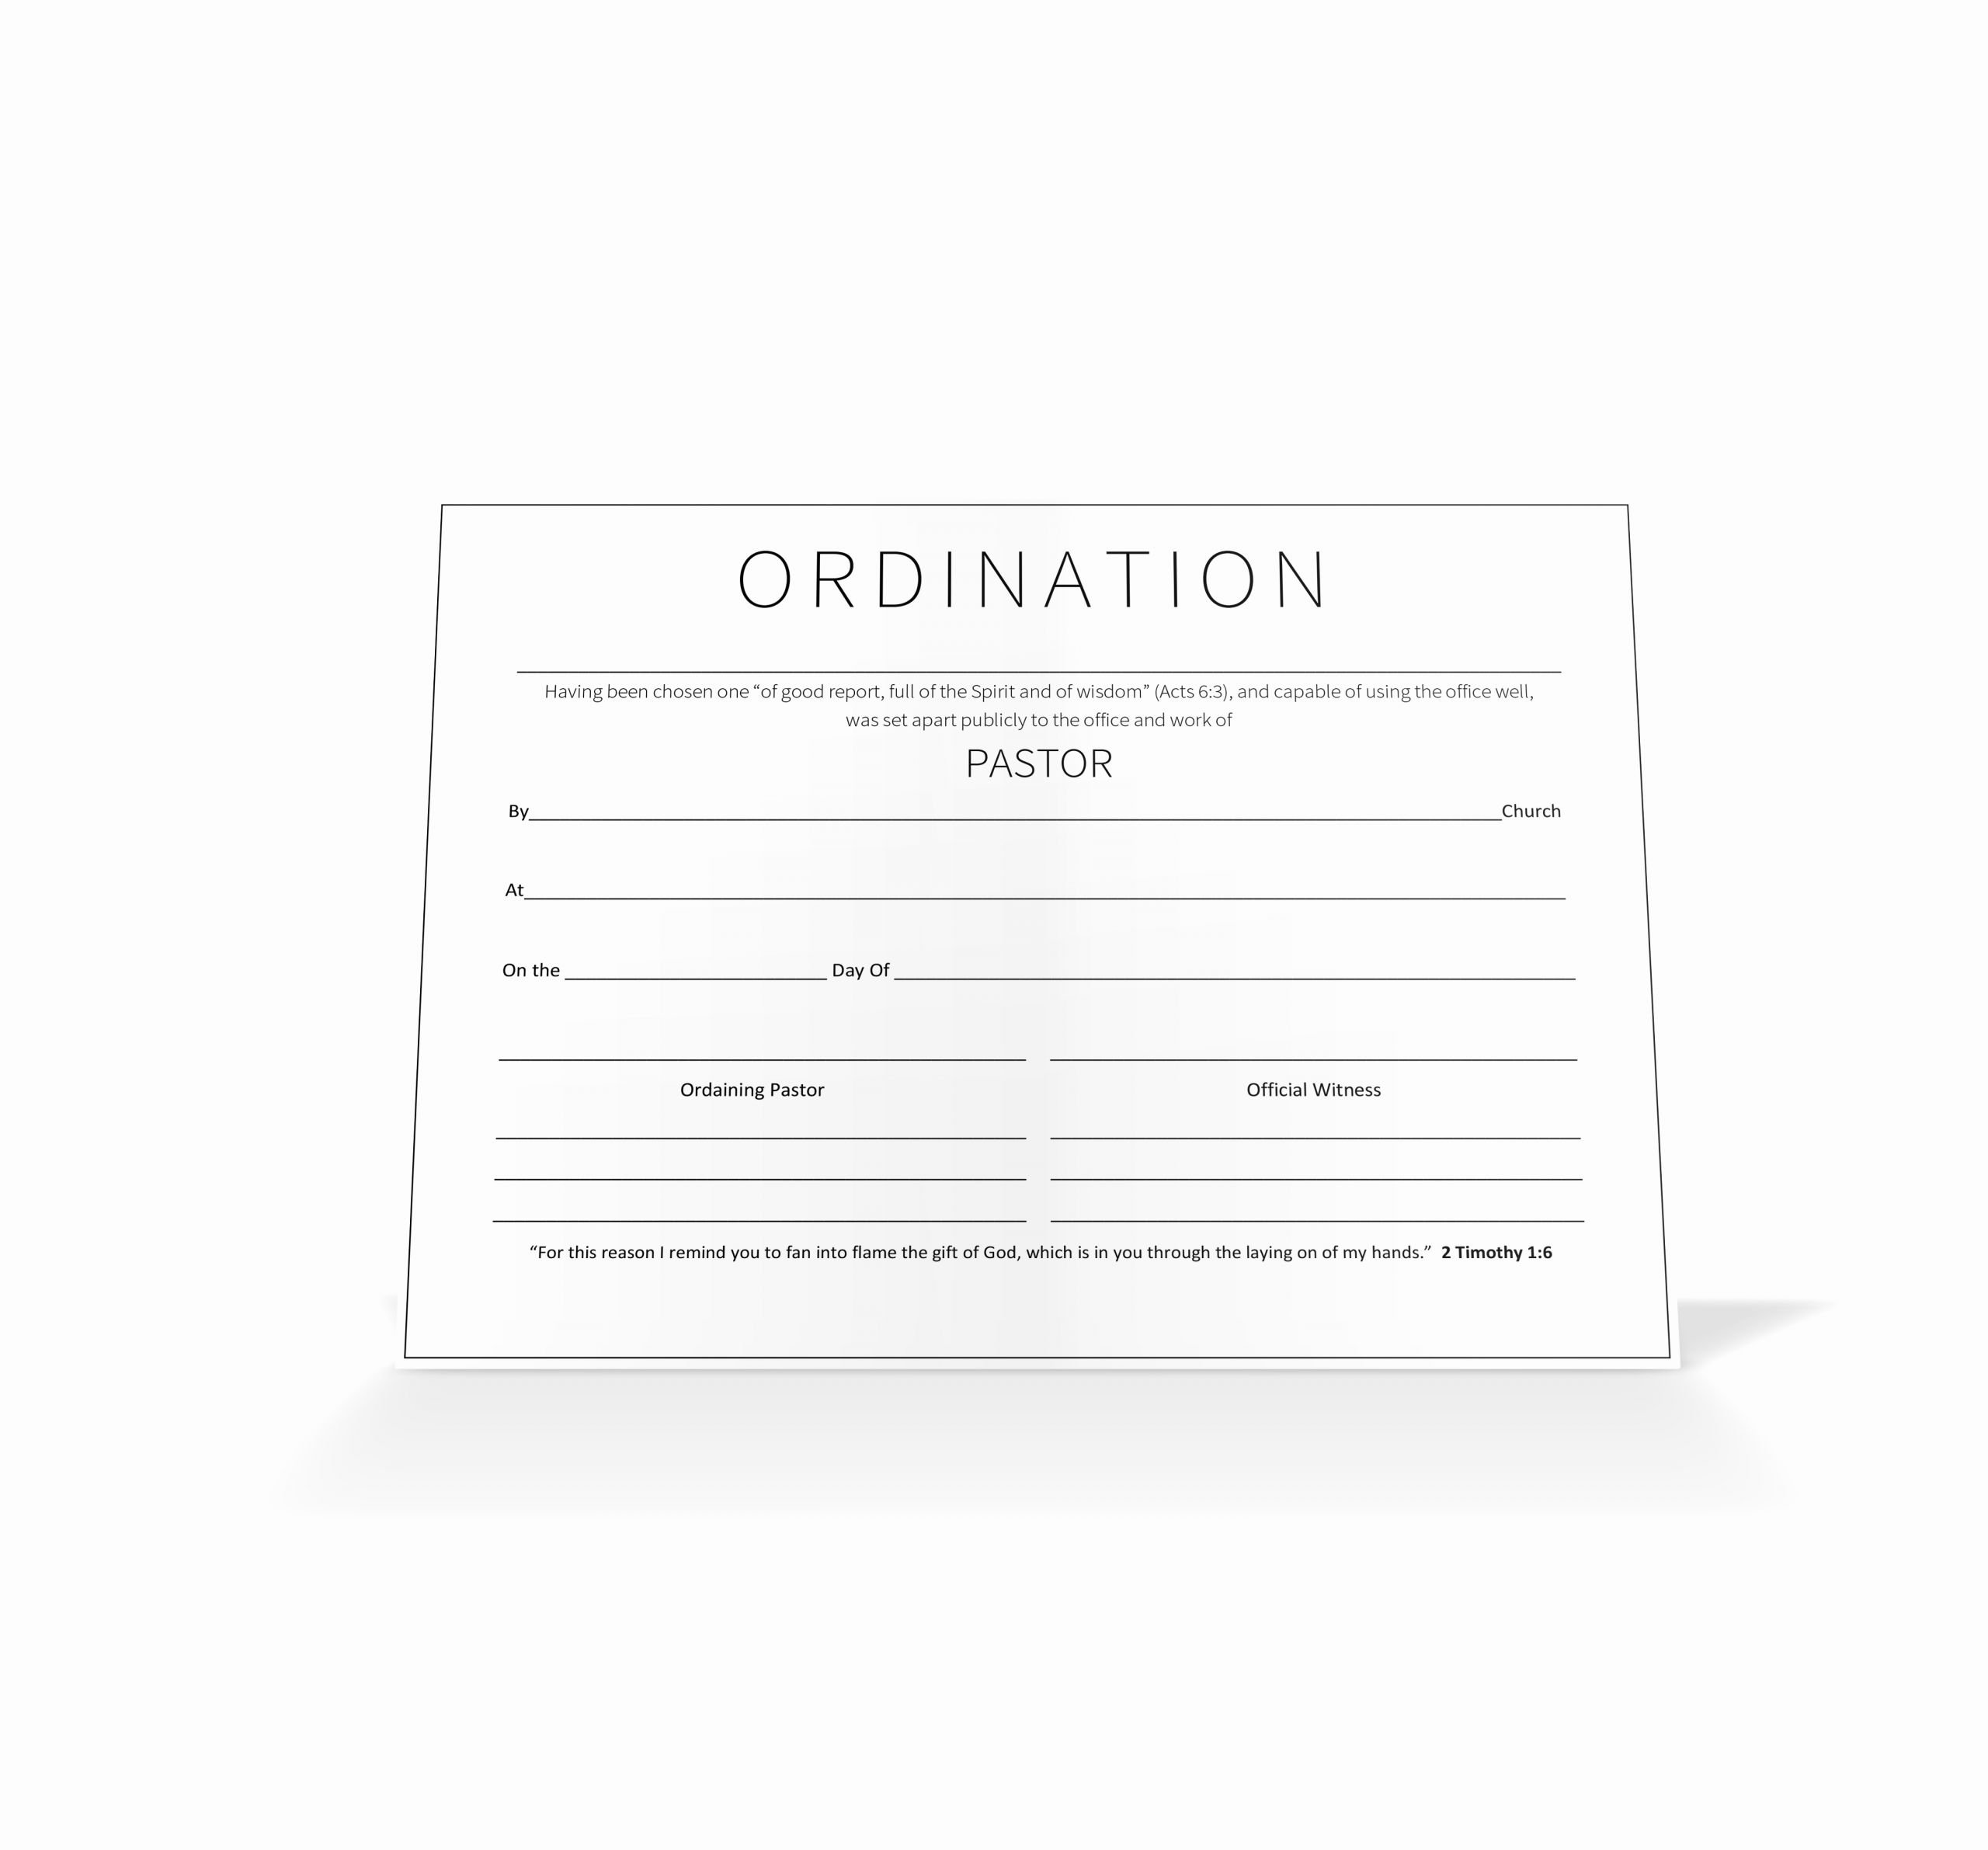 Free ordination Certificate Download Lovely Pastor ordination Certificate Vineyard Digital Membership